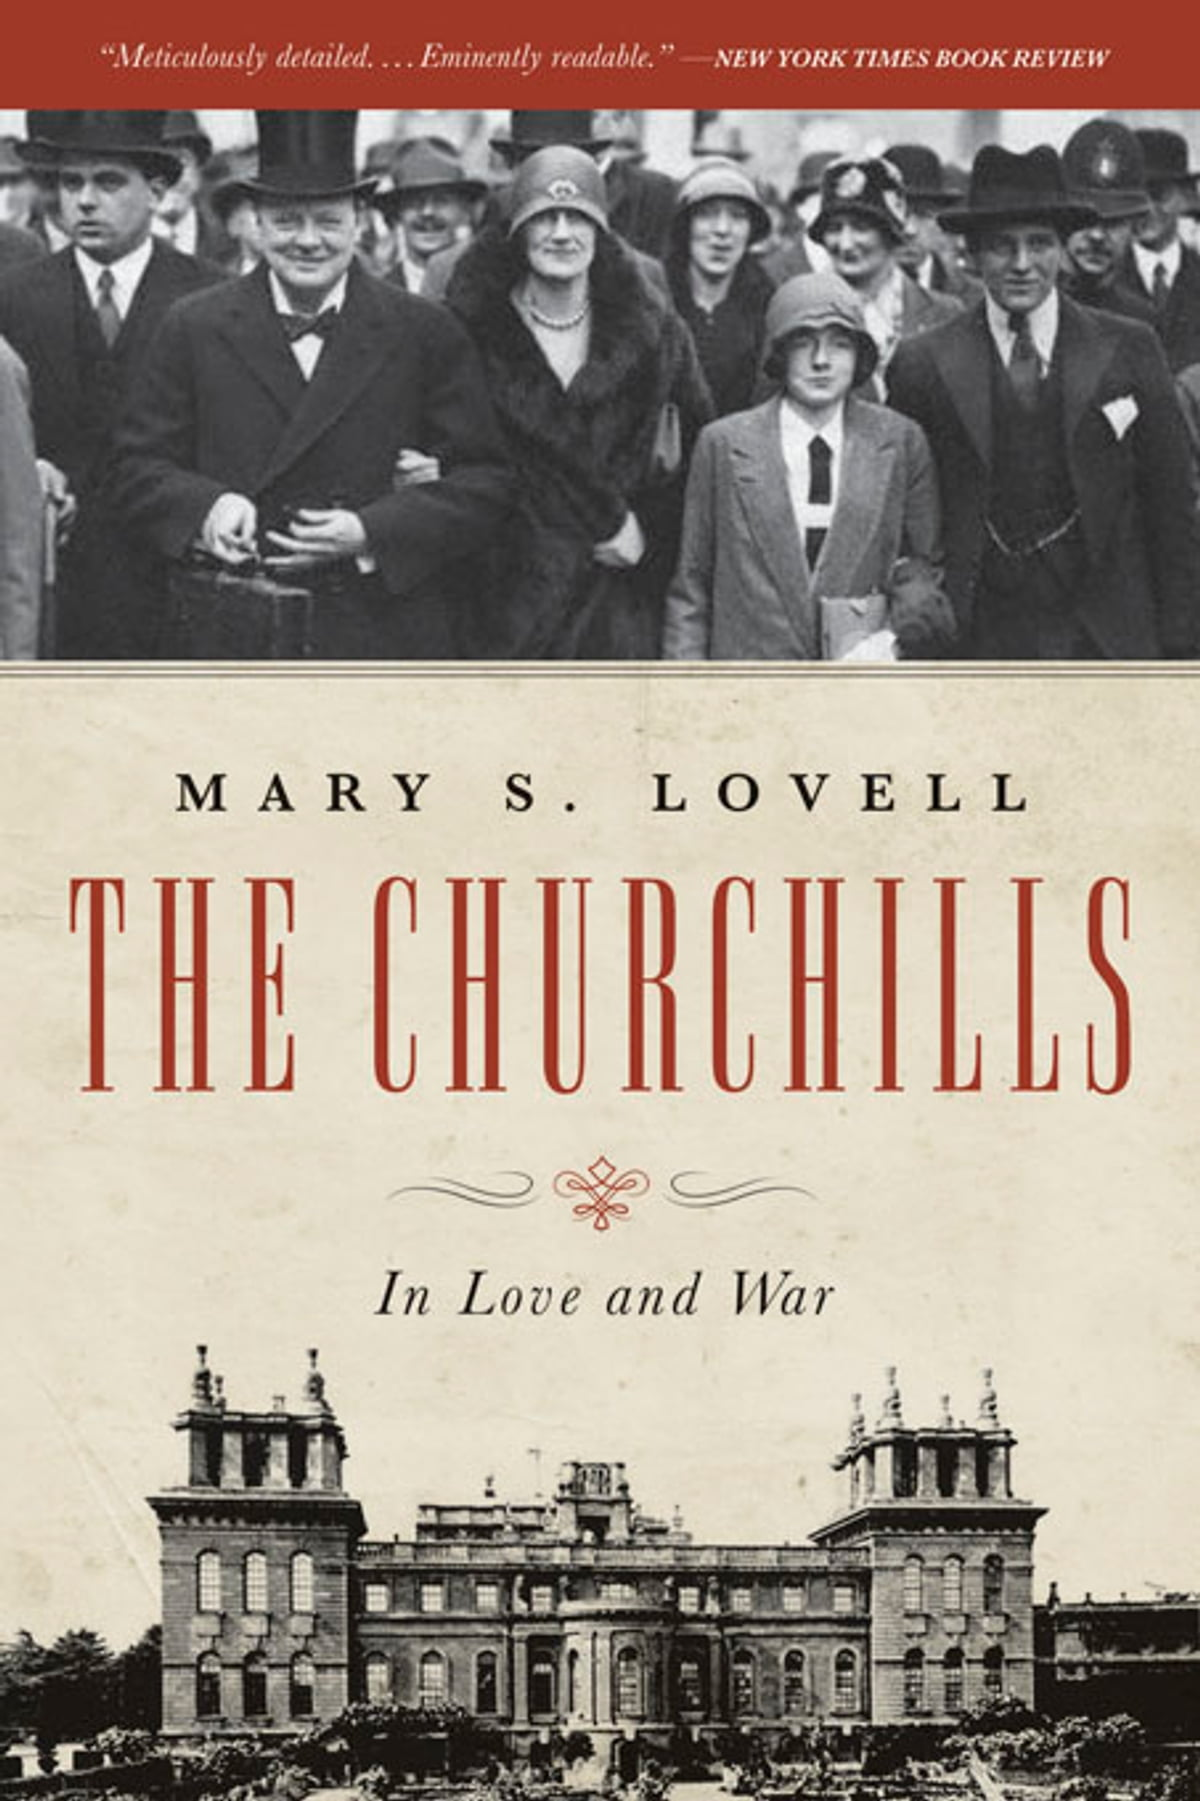 In Love and War - Mary S. Lovell